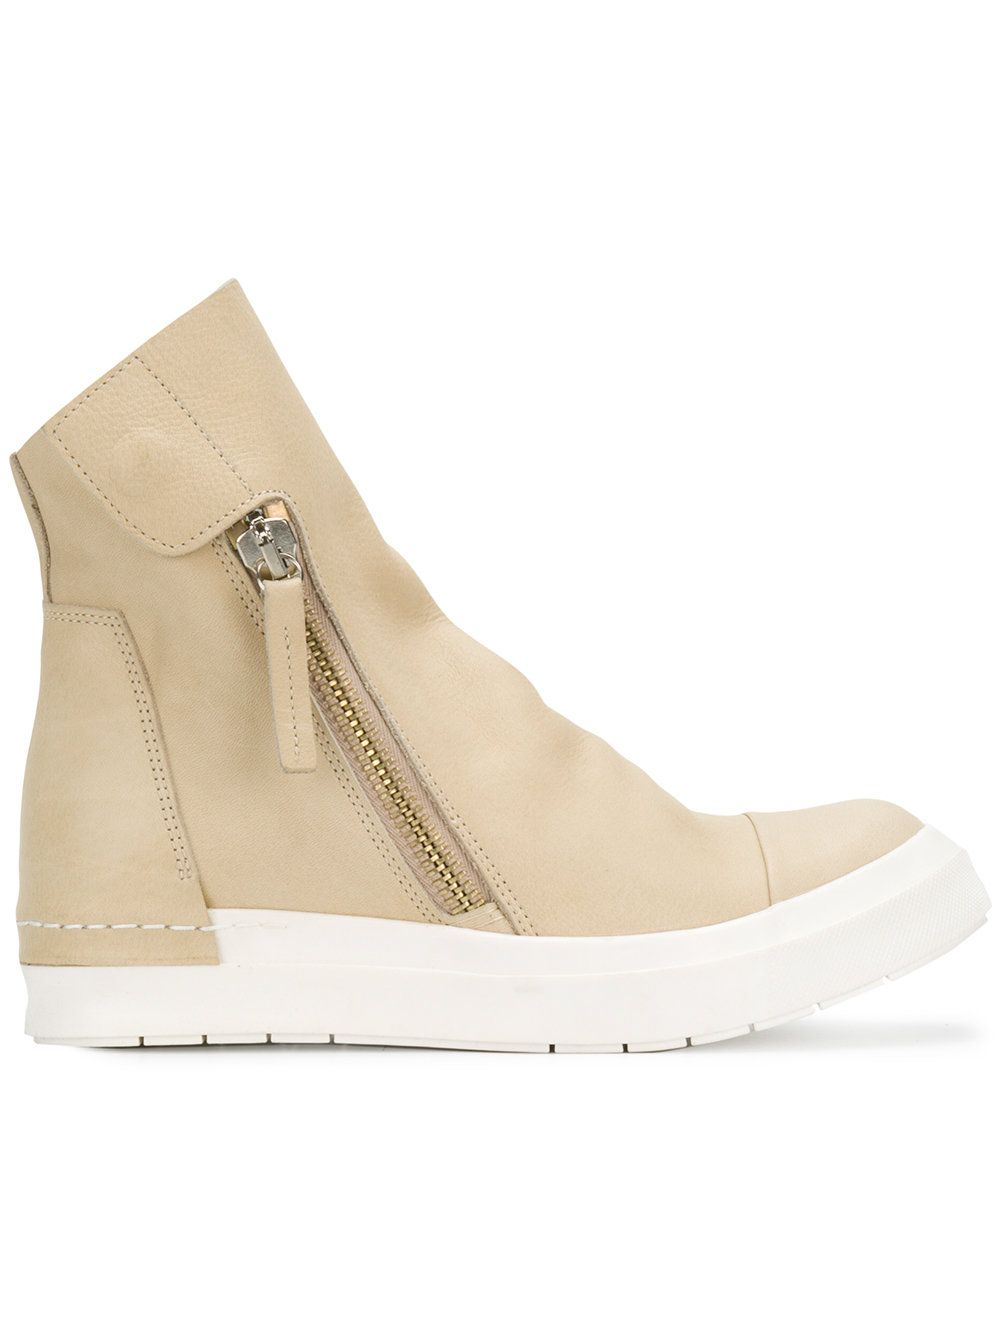 oversized tongue sneakers - Nude & Neutrals Cinzia Araia EOHiUXq